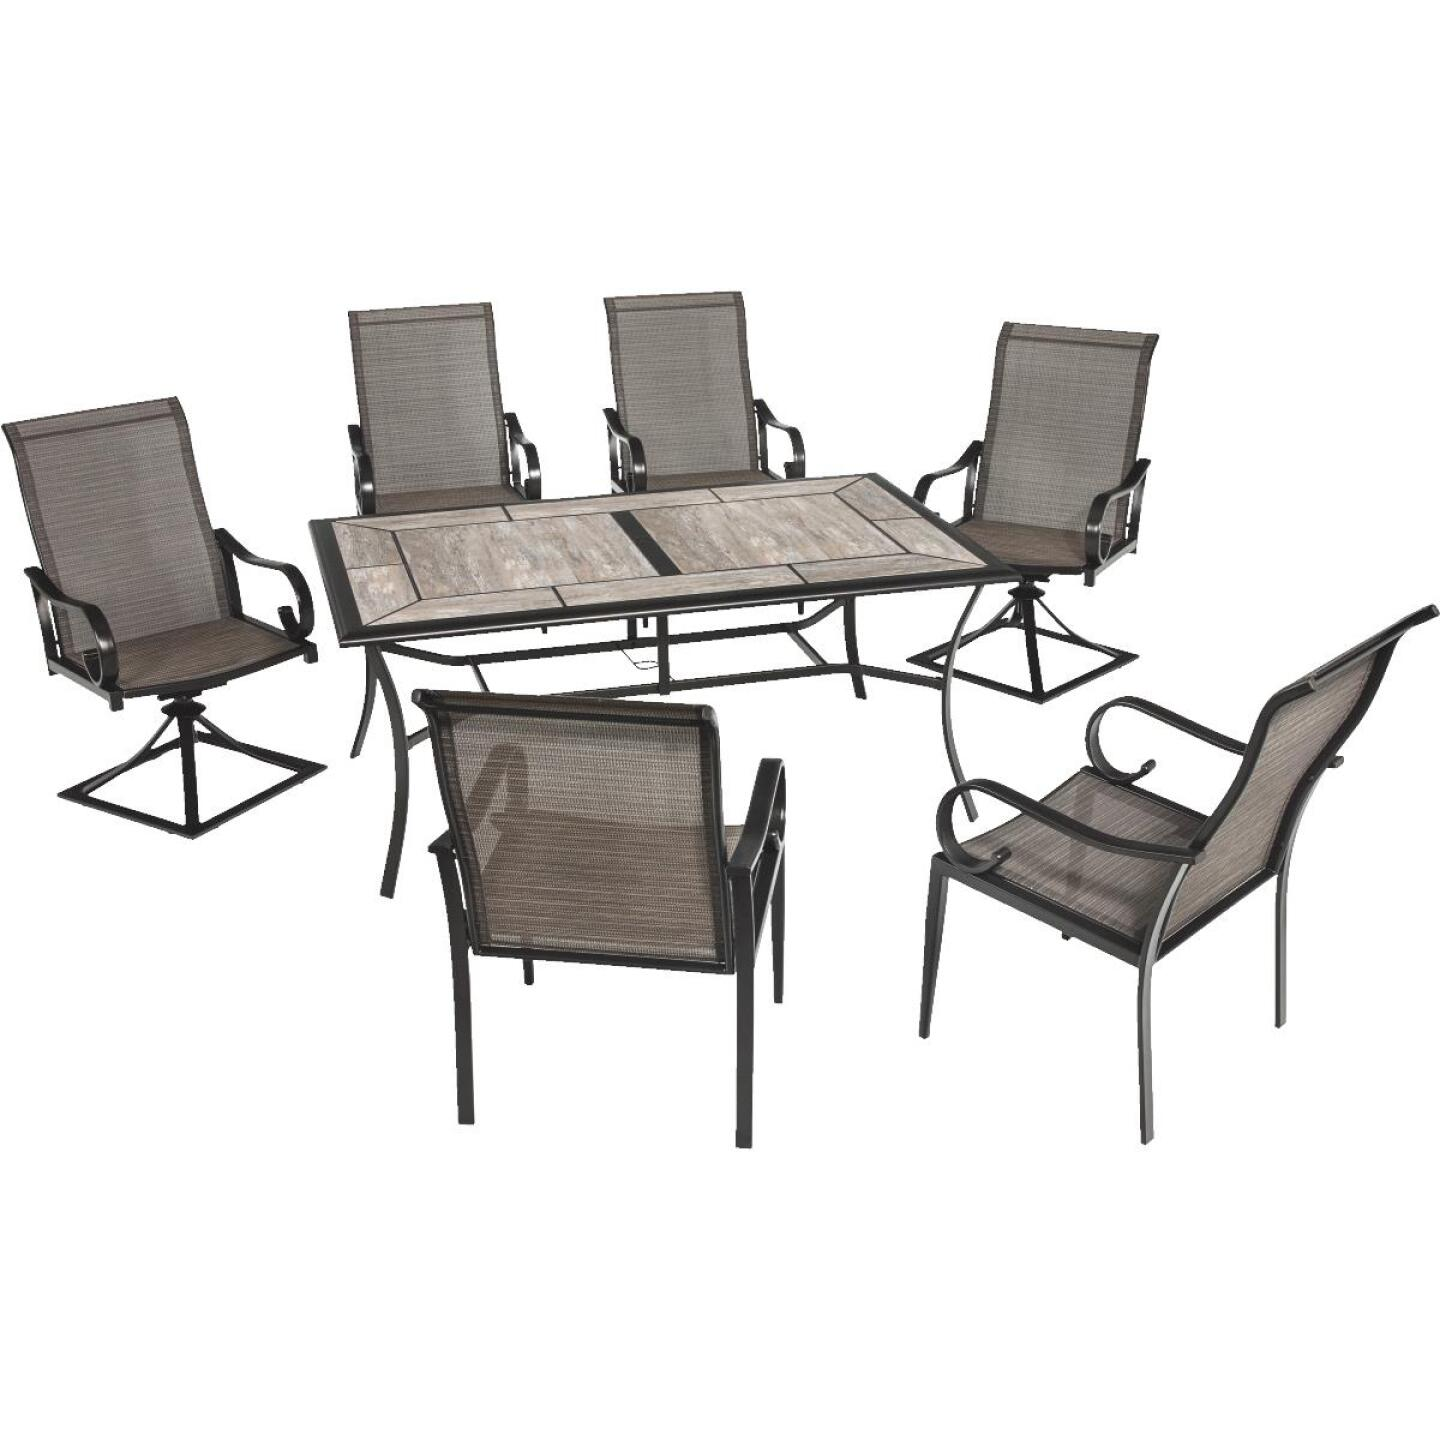 Outdoor Expressions Berkshire 7-Piece Dining Set Image 250